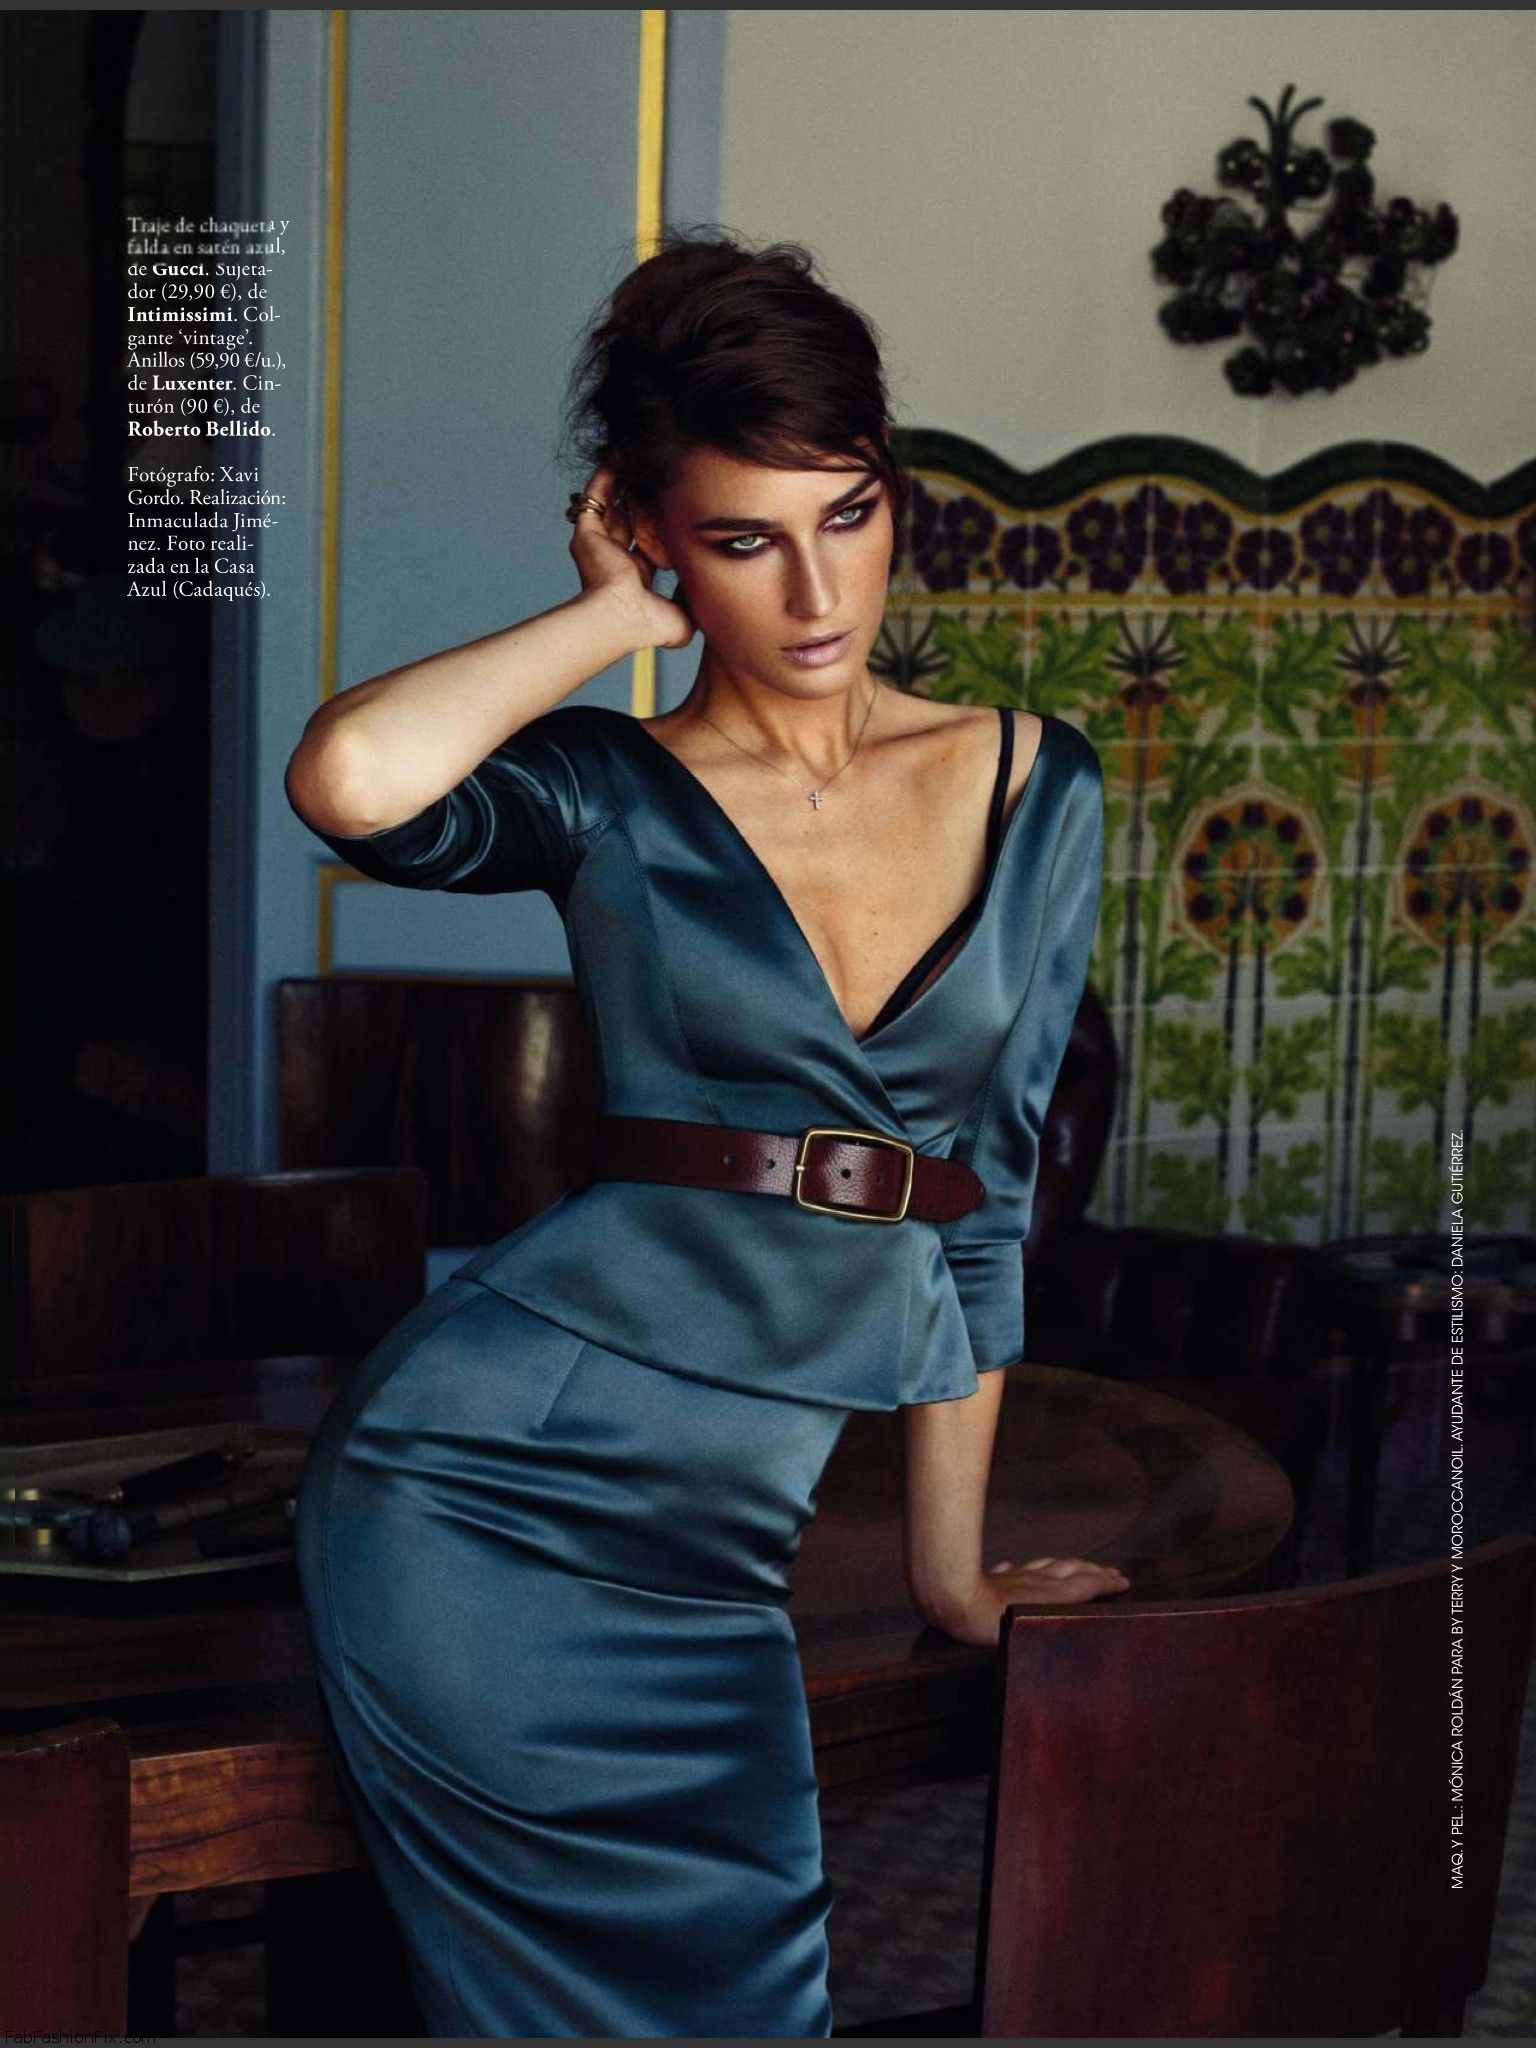 fashion_scans_remastered-eugenia_volodina-elle_espana-september_2013-scanned_by_vampirehorde-hq-36